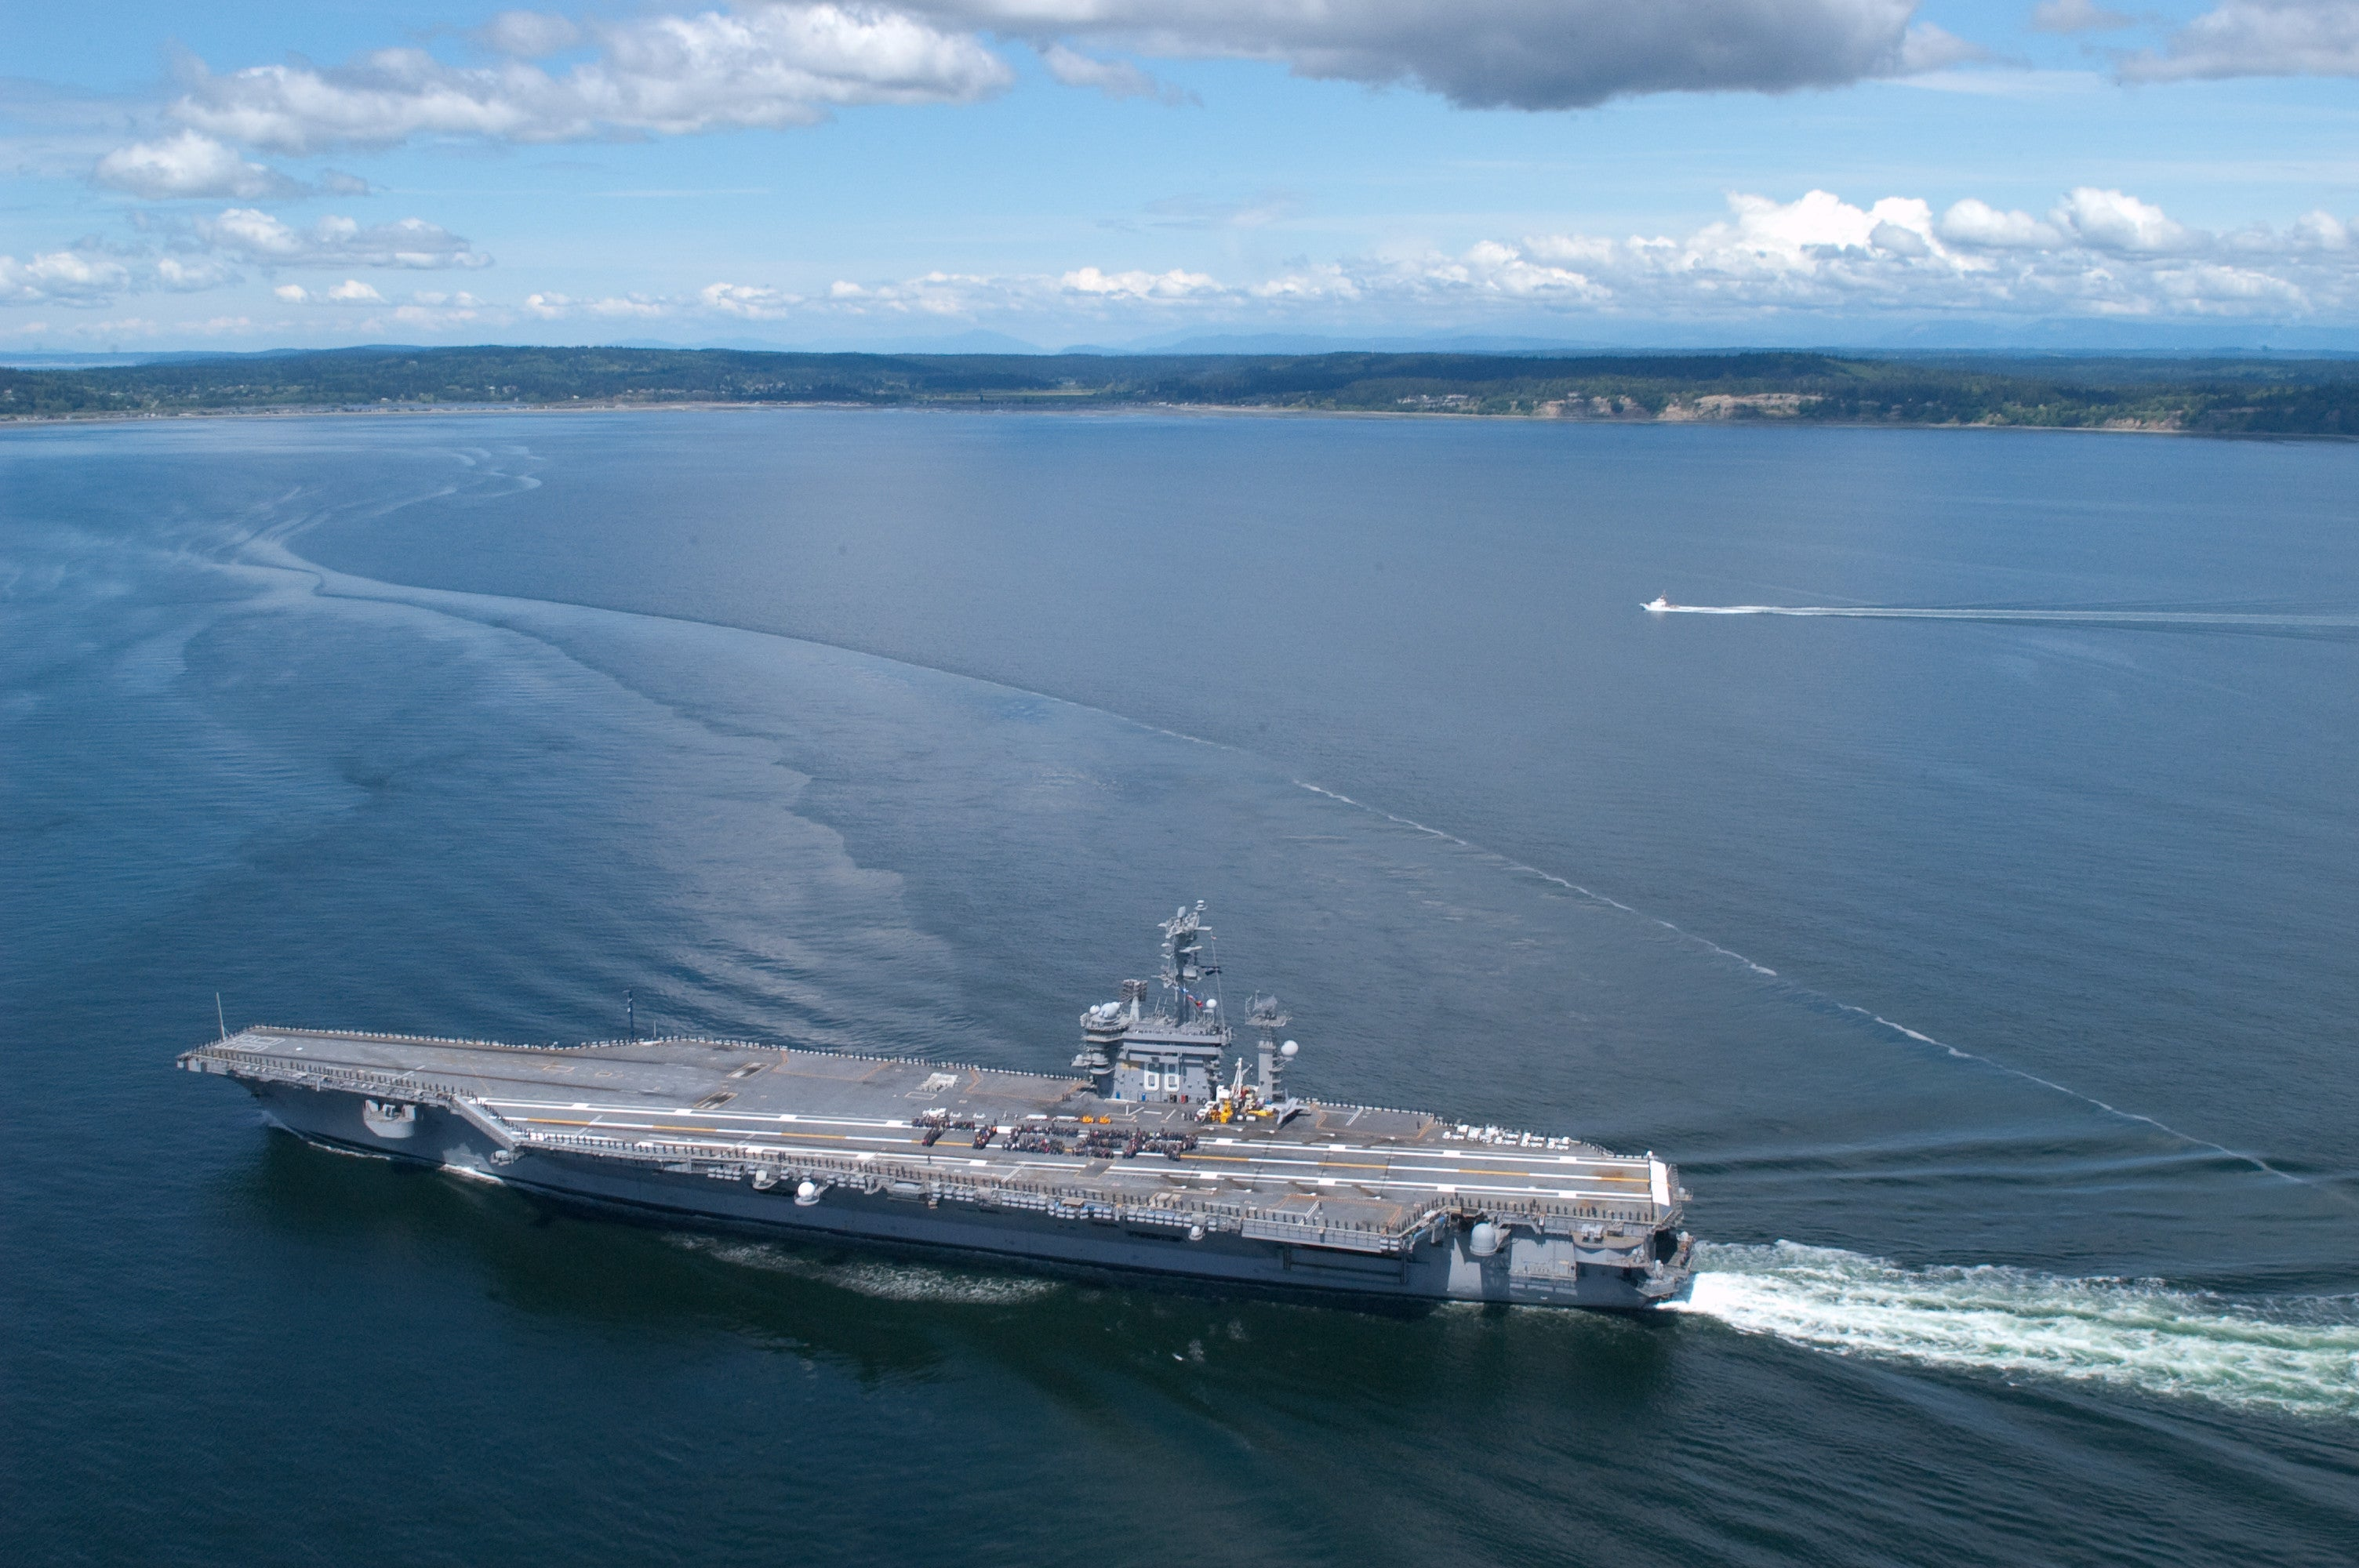 "USS Nimitz CVN-68 Puget Sound, WA May 24, 2012 - 8 x 12"" Photograph"